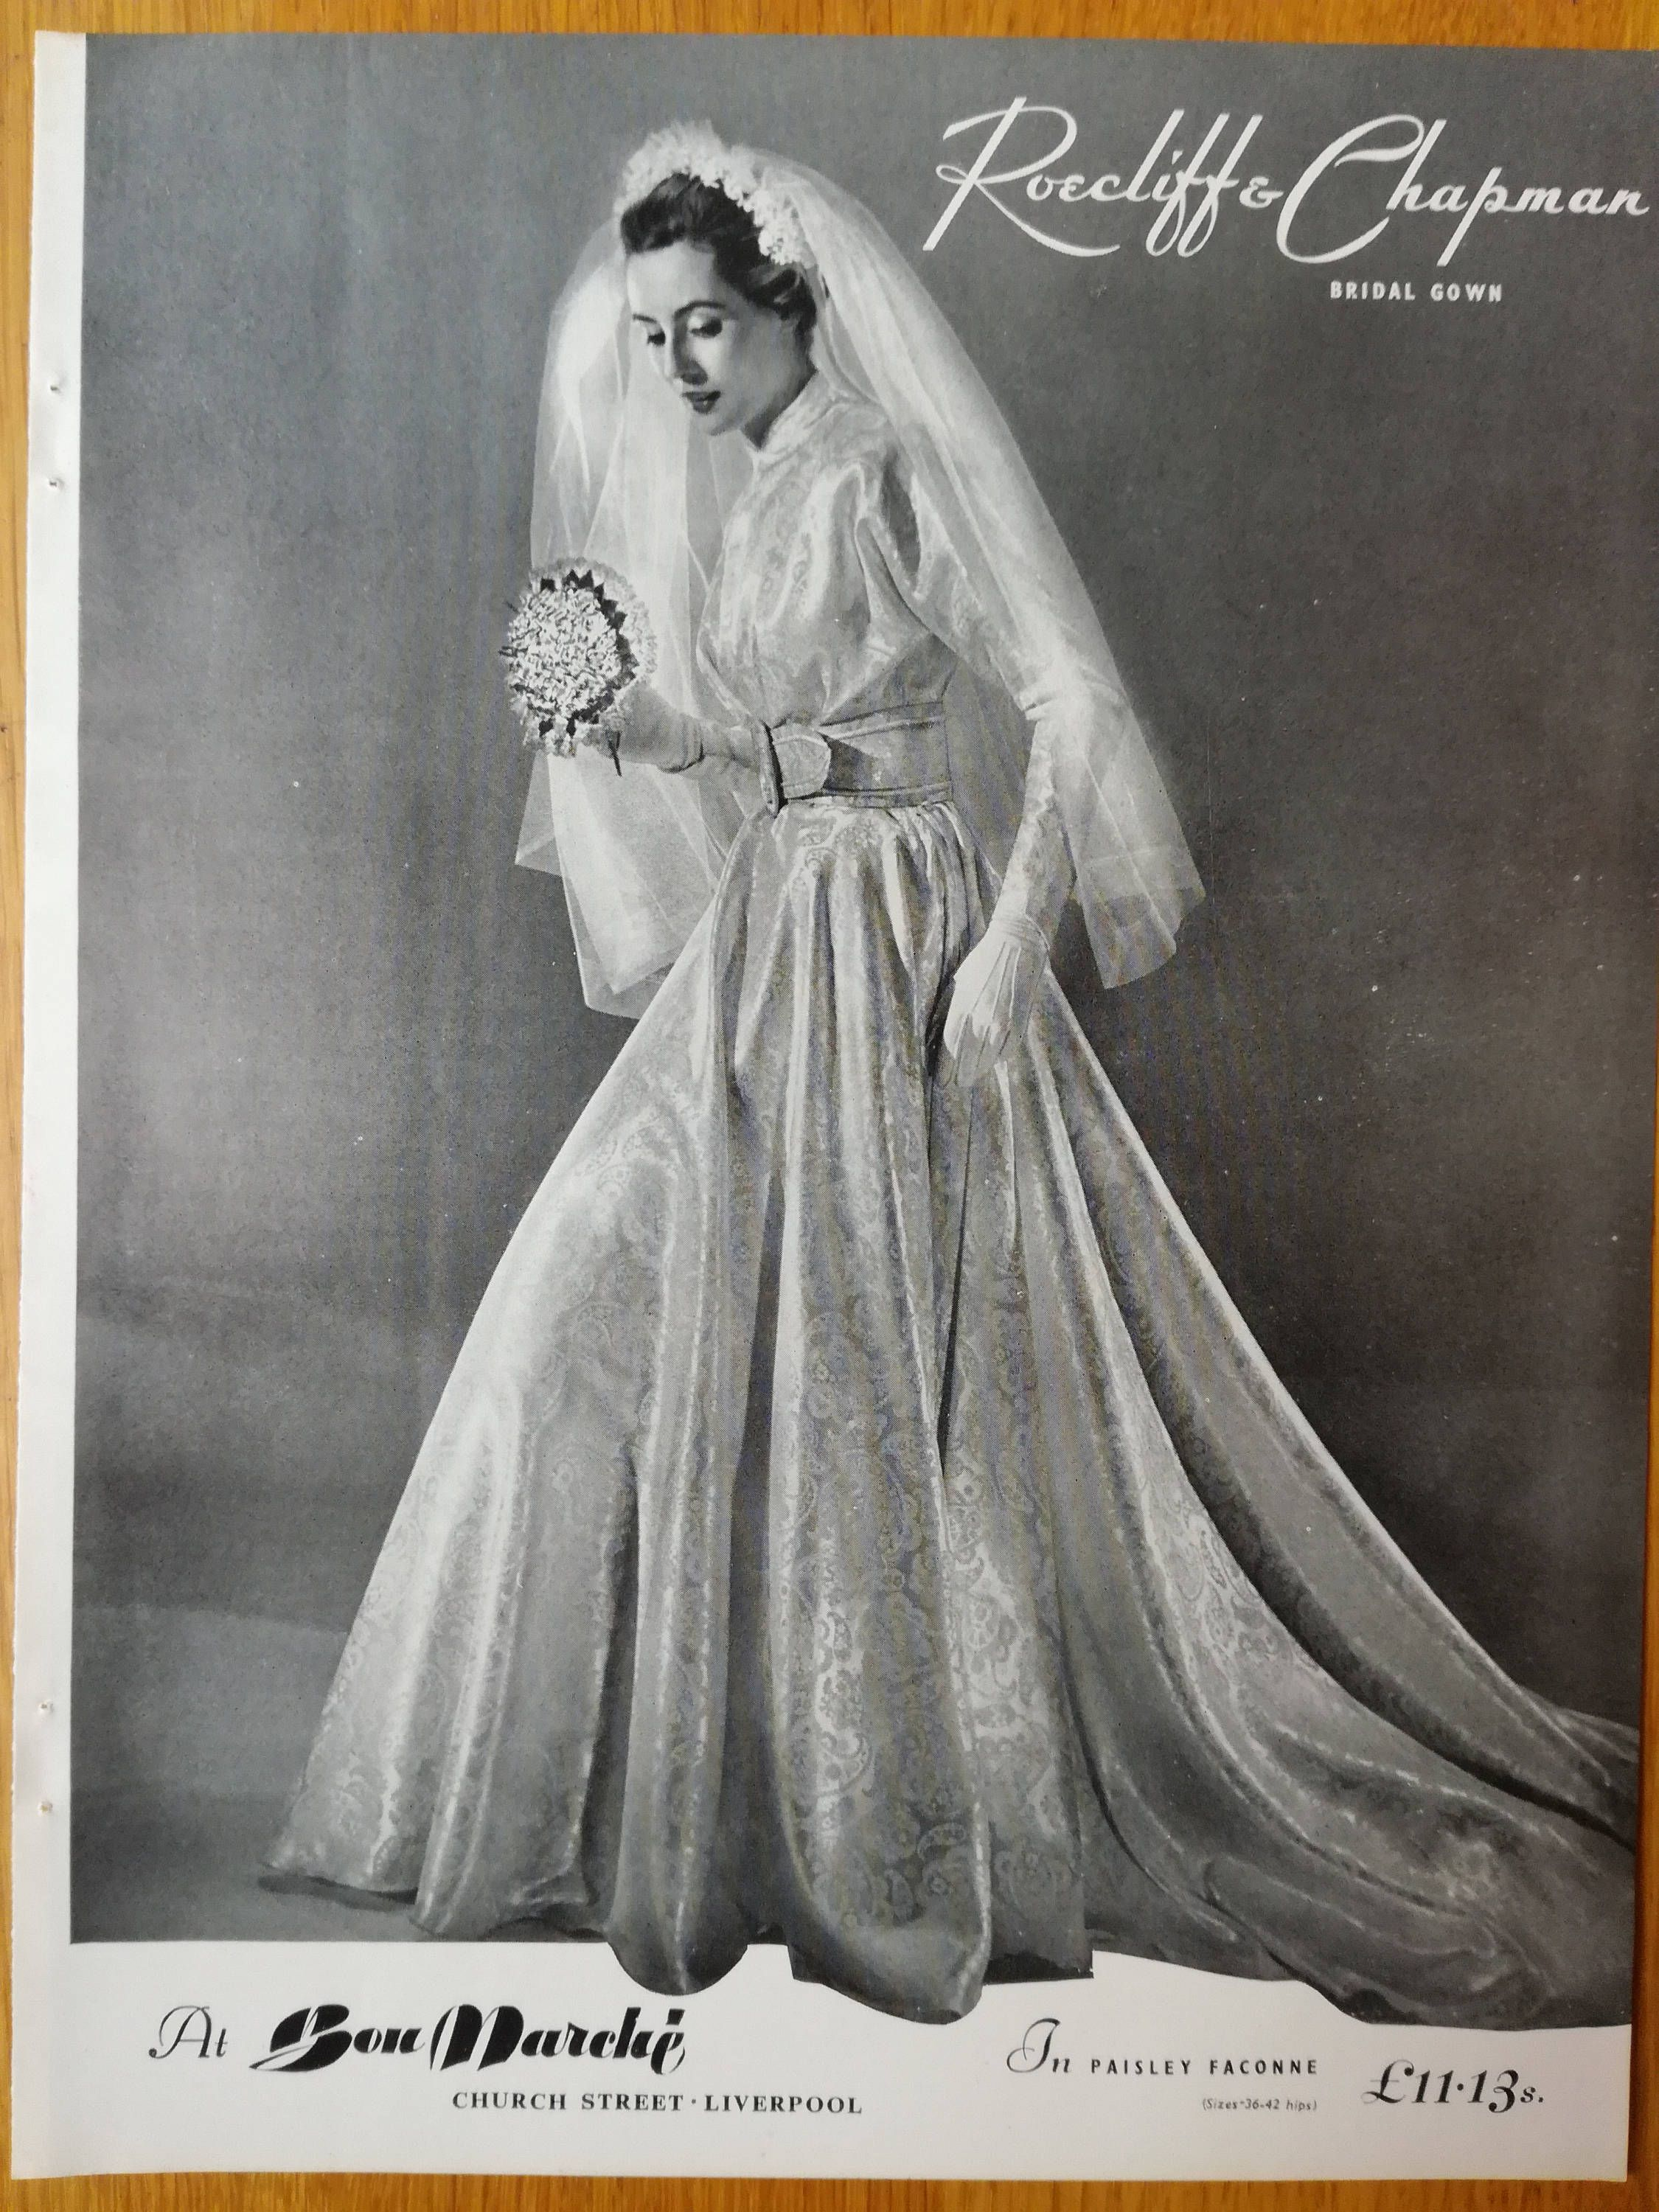 1950s Fashion Wedding Vogue Ad 50s Vogue Advert Wedding Dress